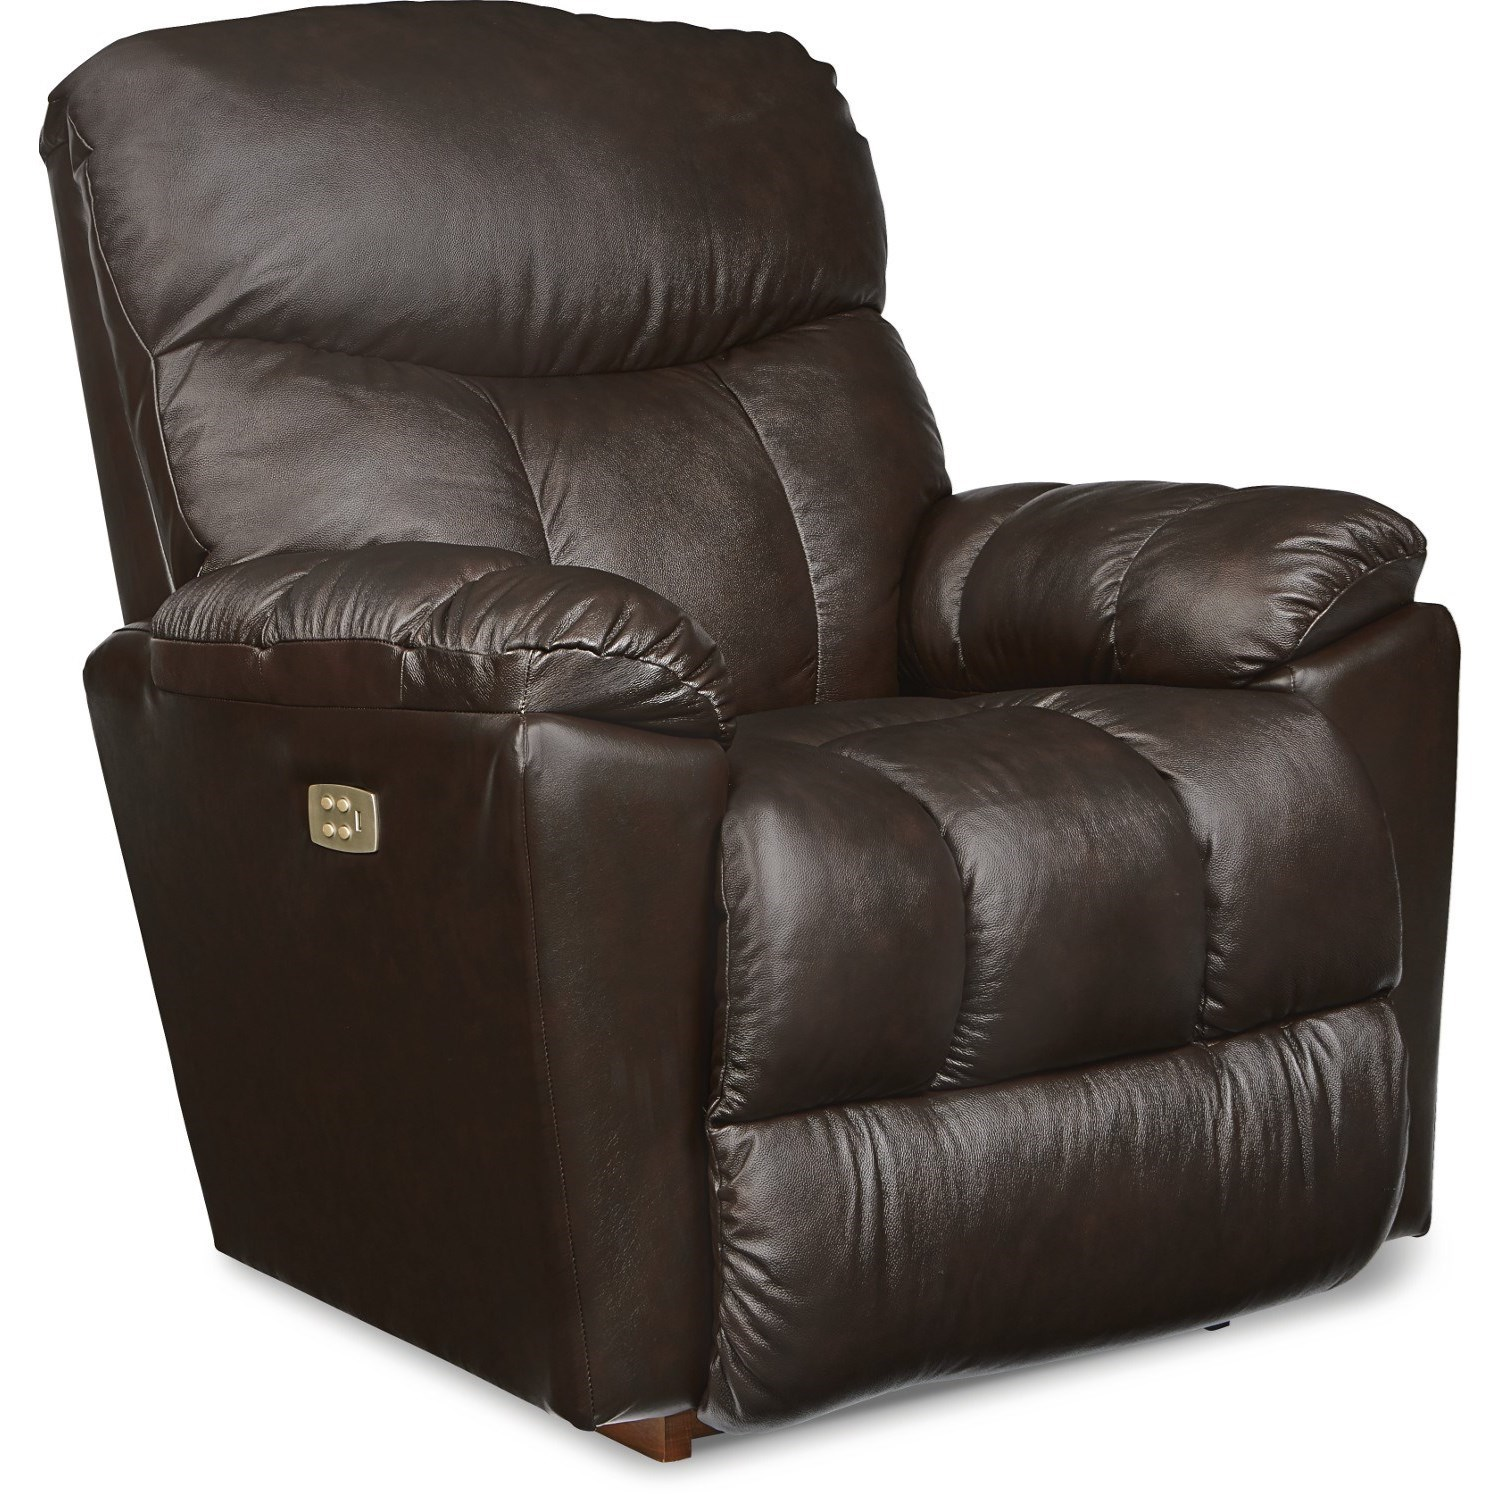 Morrison Power Rocking Recliner by La-Z-Boy at Bennett's Furniture and Mattresses